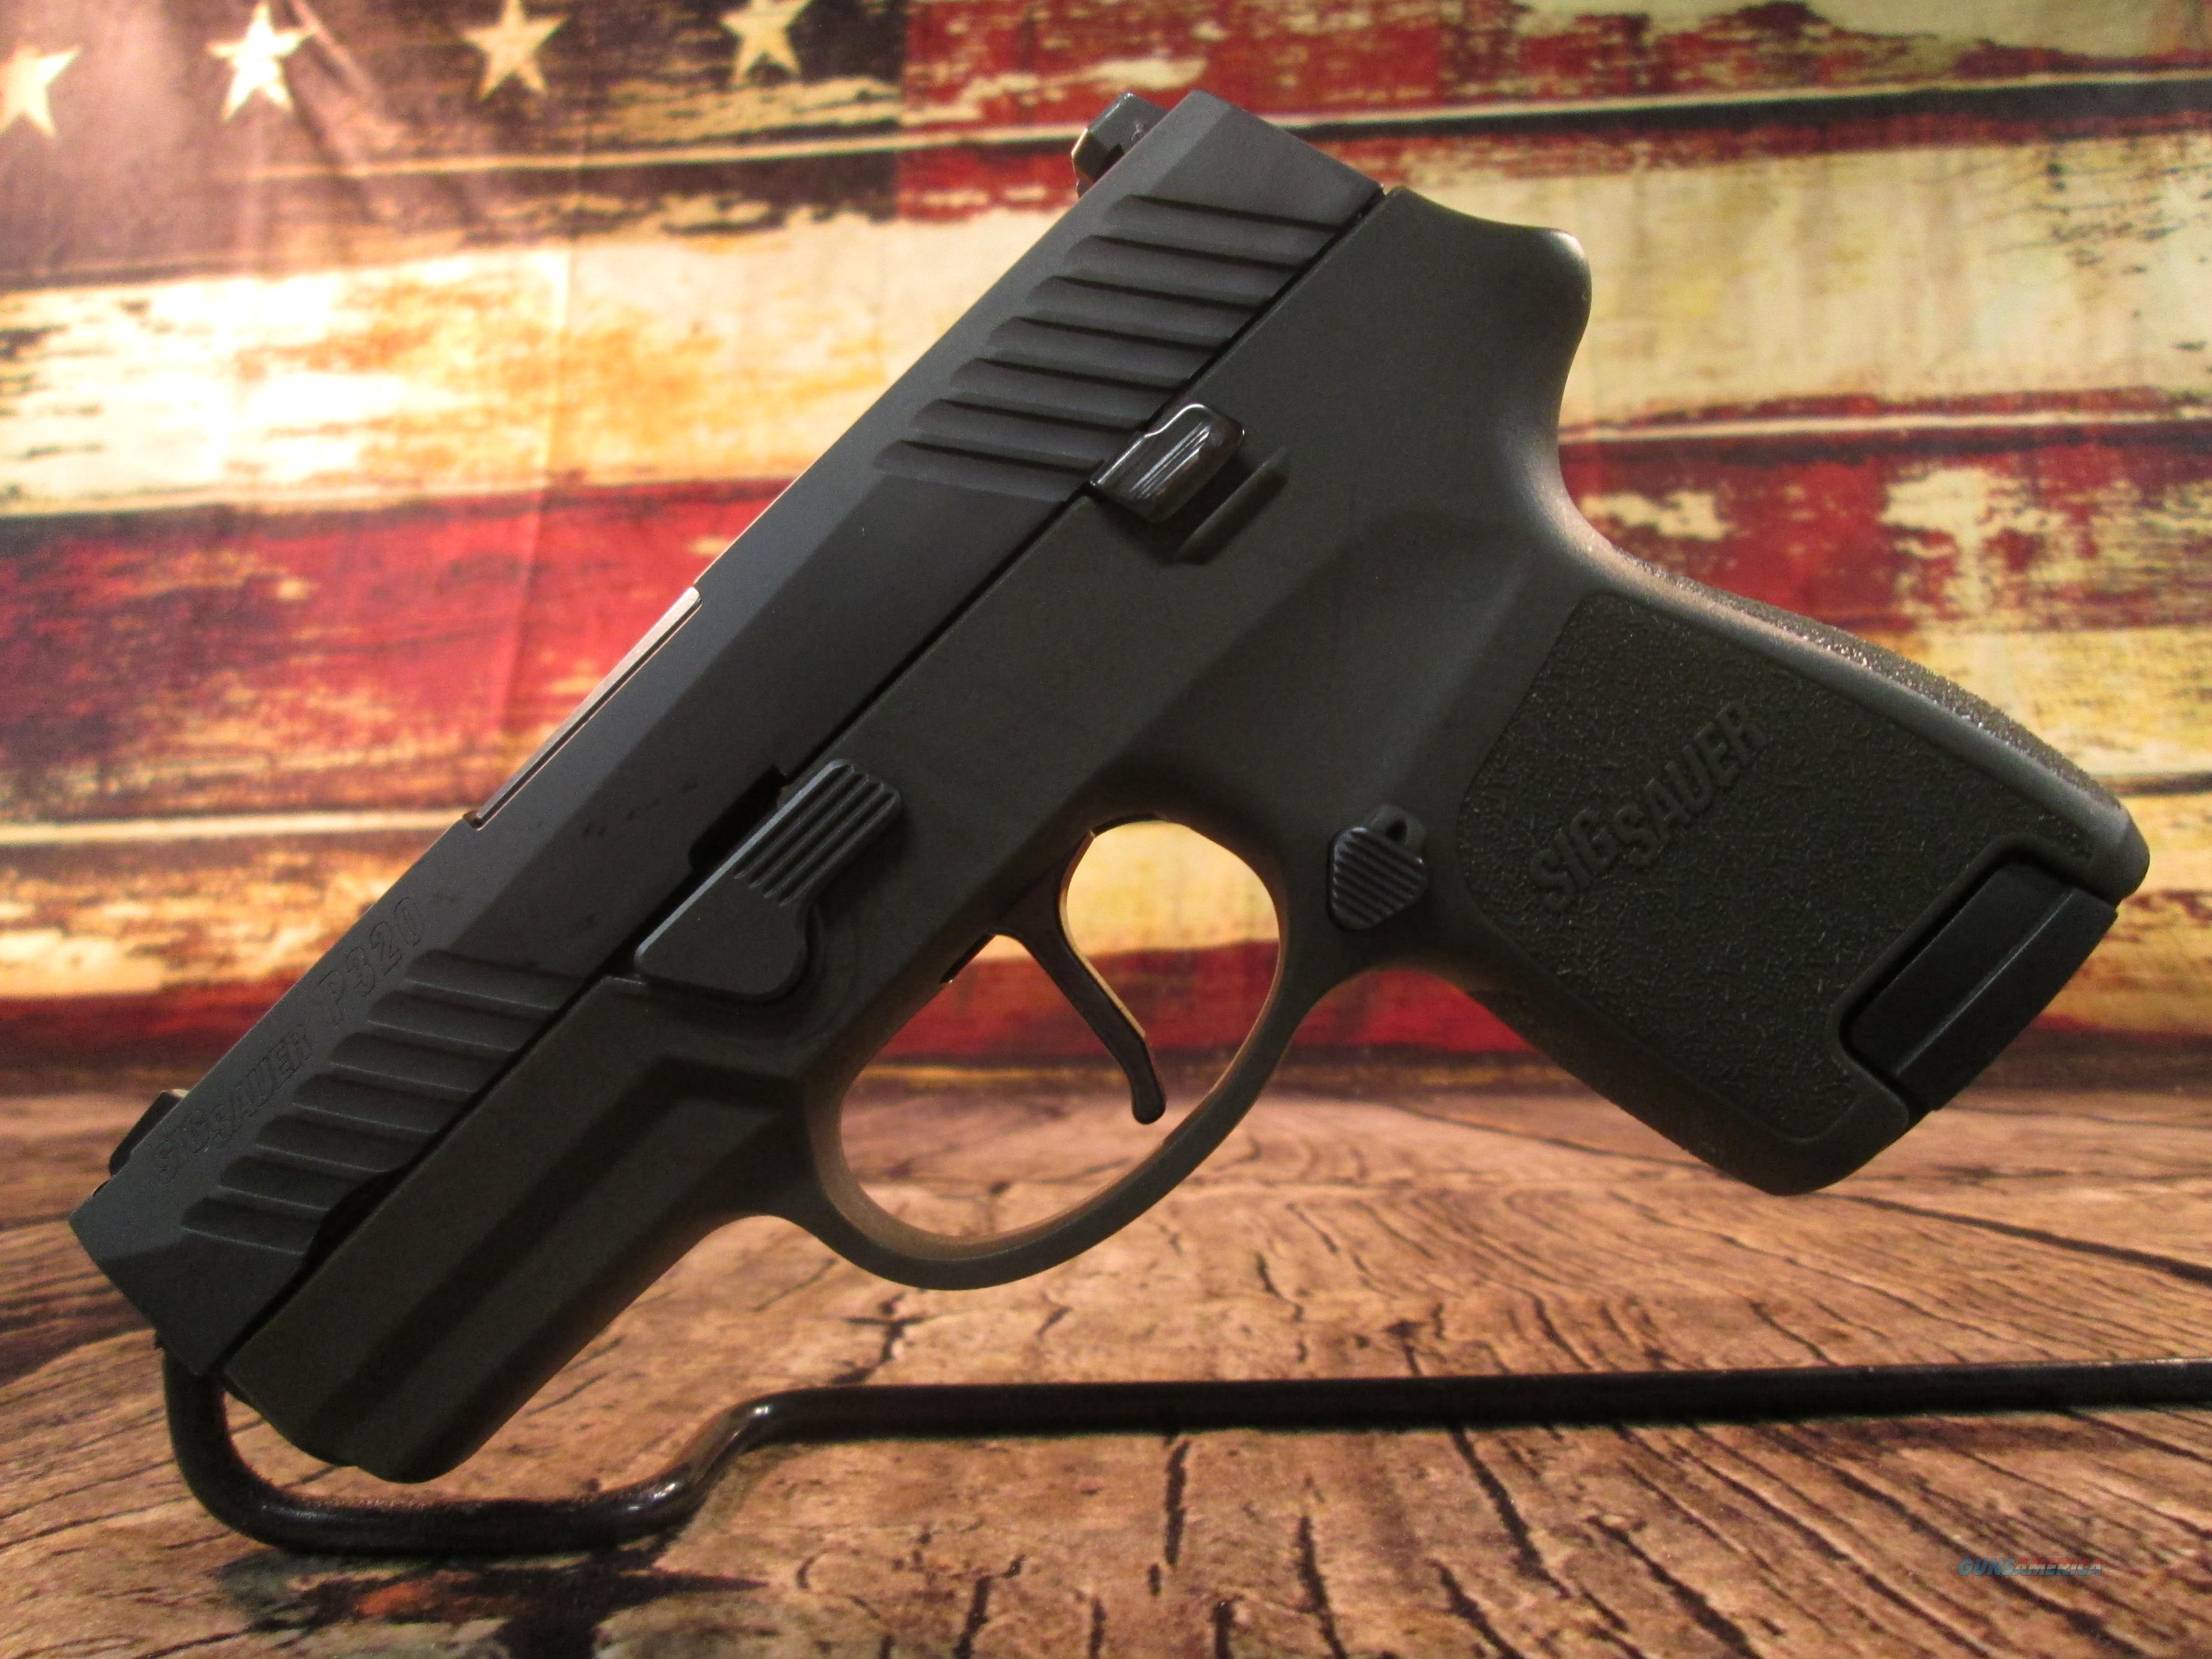 SIG SAUER P320 SUB COMPACT OD GREEN W/ NIGHT SIGHTS (62841)  Guns > Pistols > Sig - Sauer/Sigarms Pistols > P320